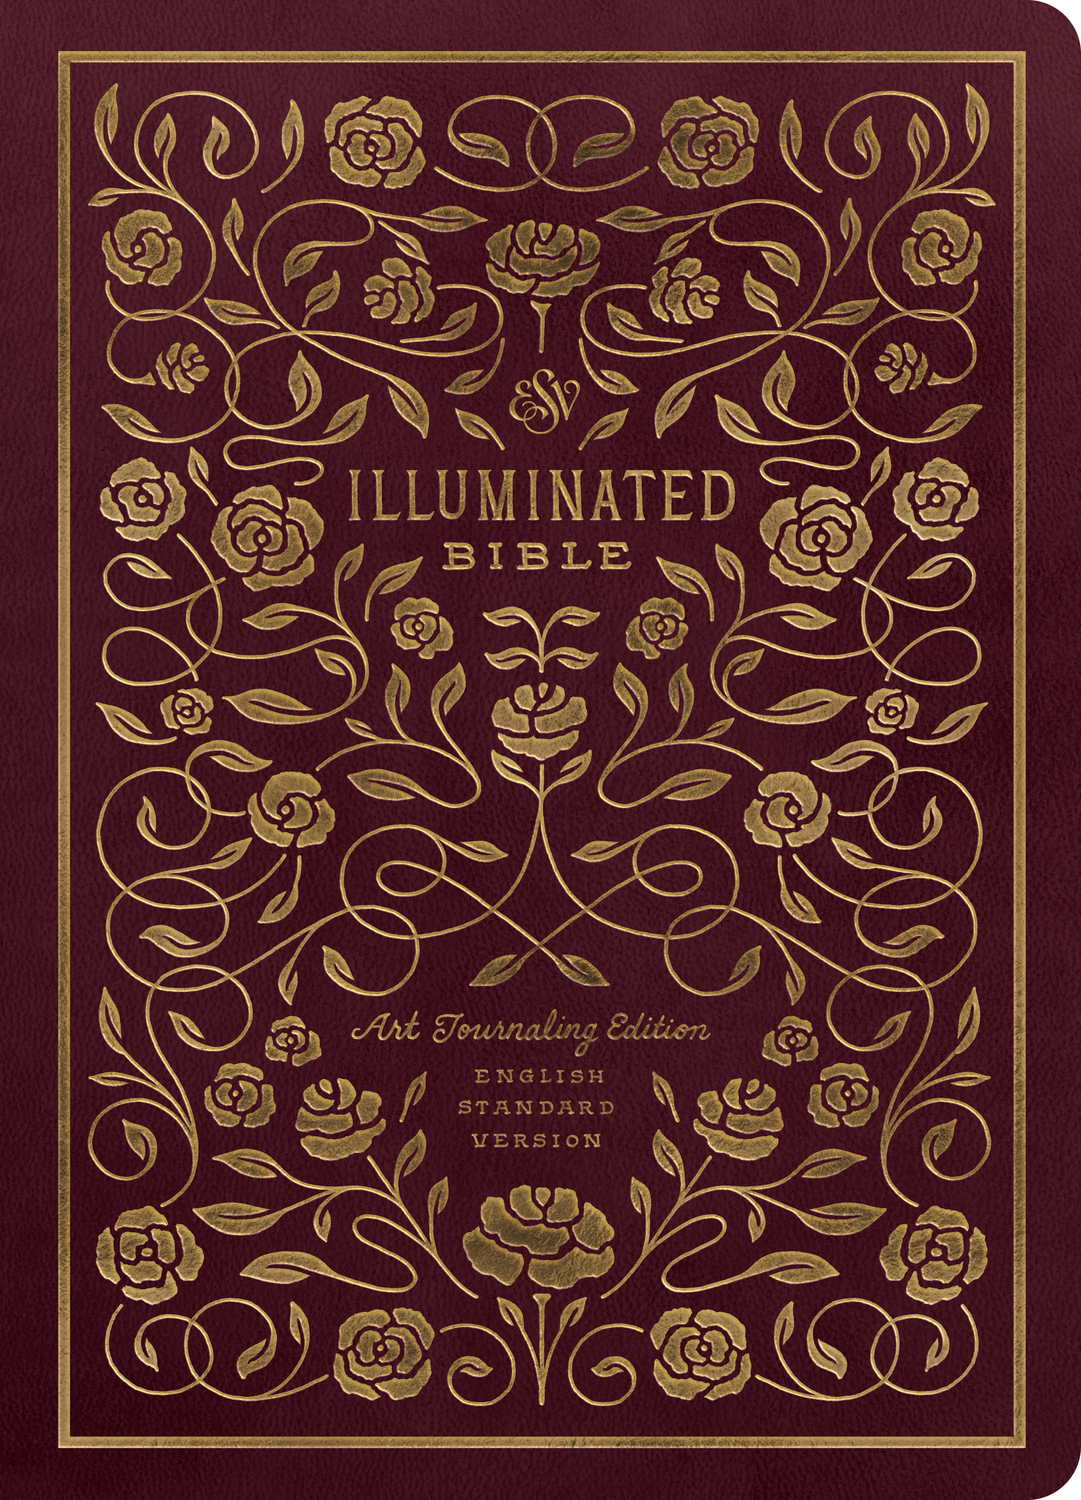 ESV Illuminated Bible, Art Journaling Edition